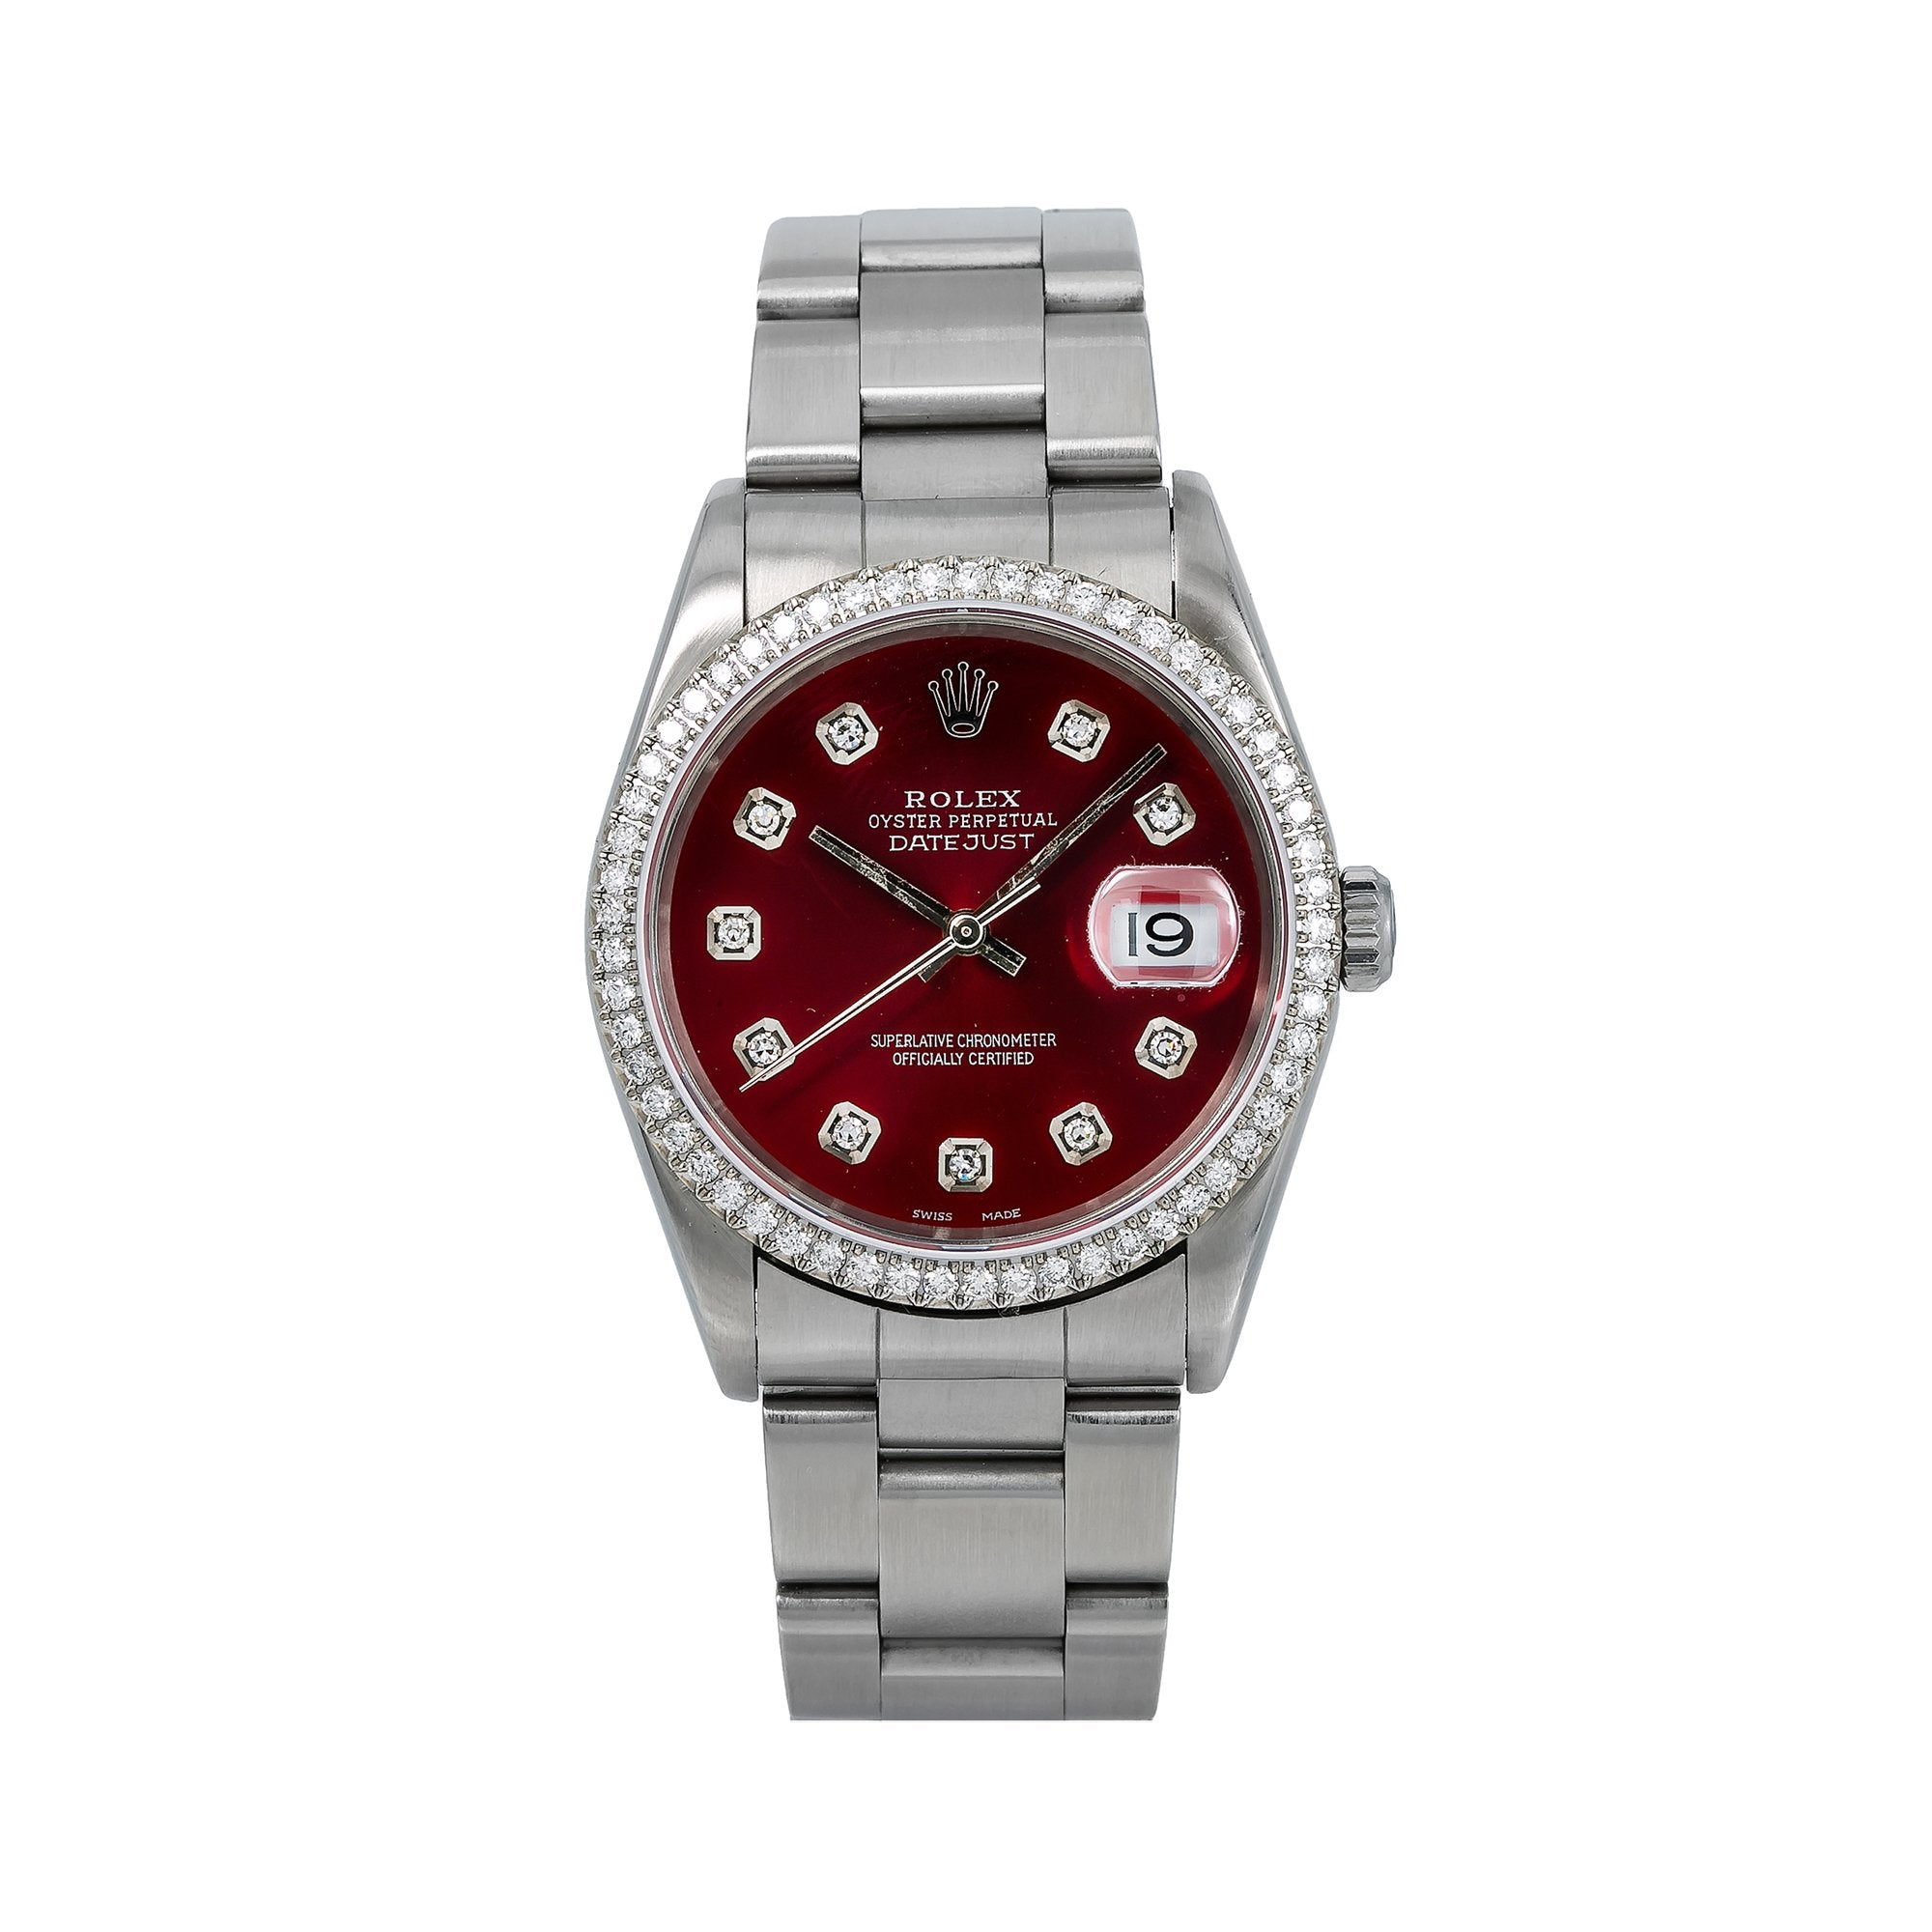 Rolex Datejust Diamond Watch, 16200 36mm, Red Diamond Dial With Stainless Steel Oyster Bra